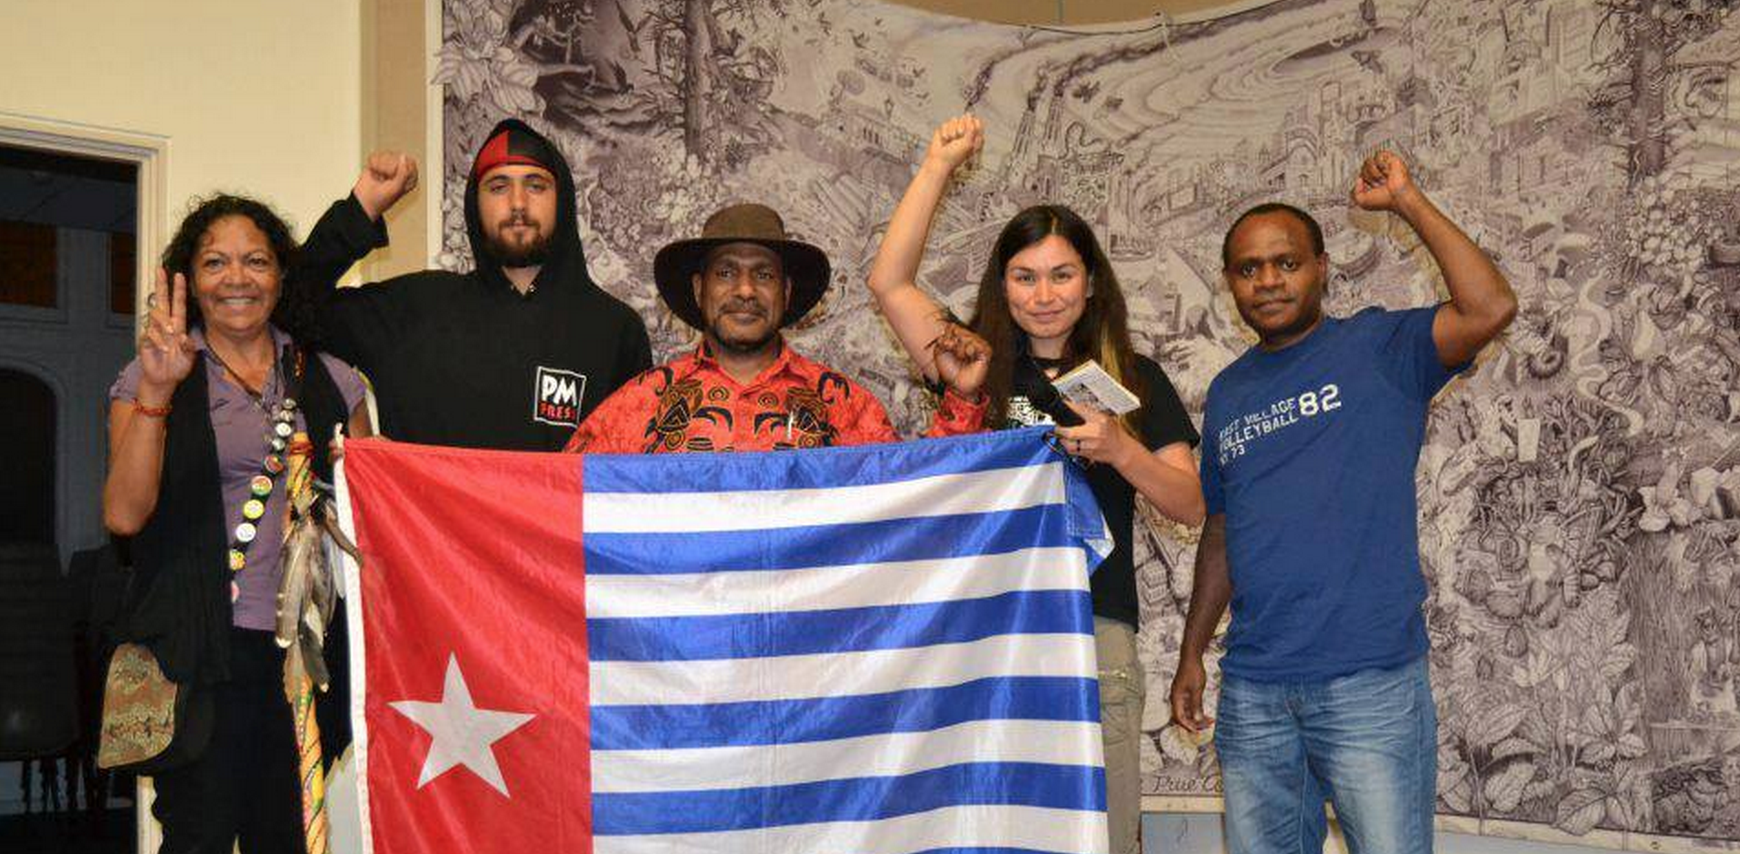 Free West Papua Campaign office to open in Australia